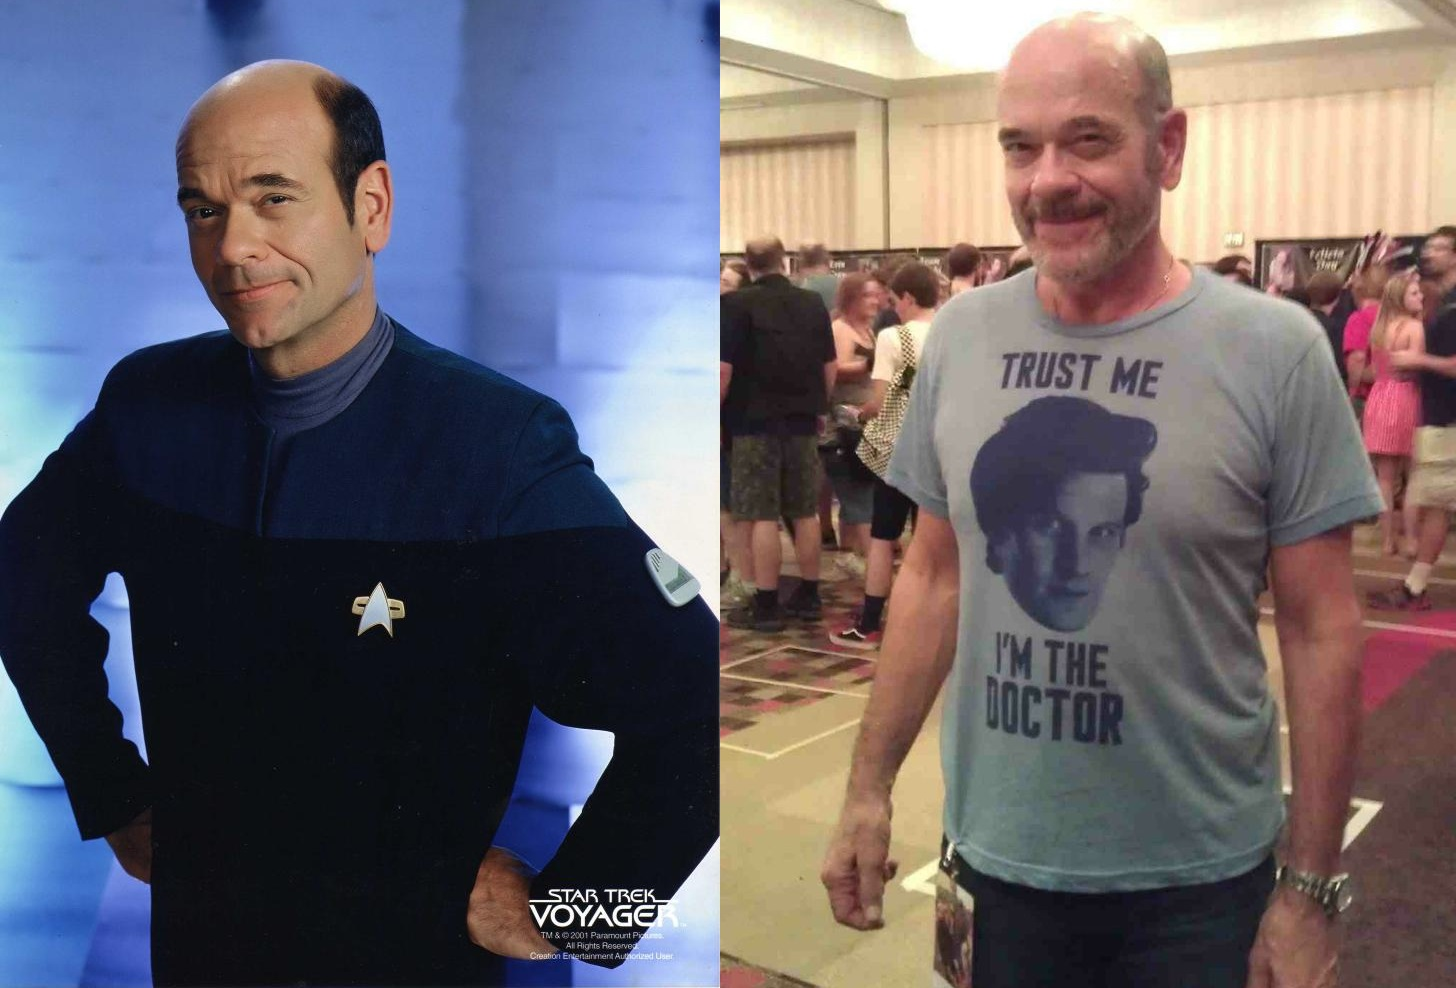 Robert Picardo The Doctor.jpg